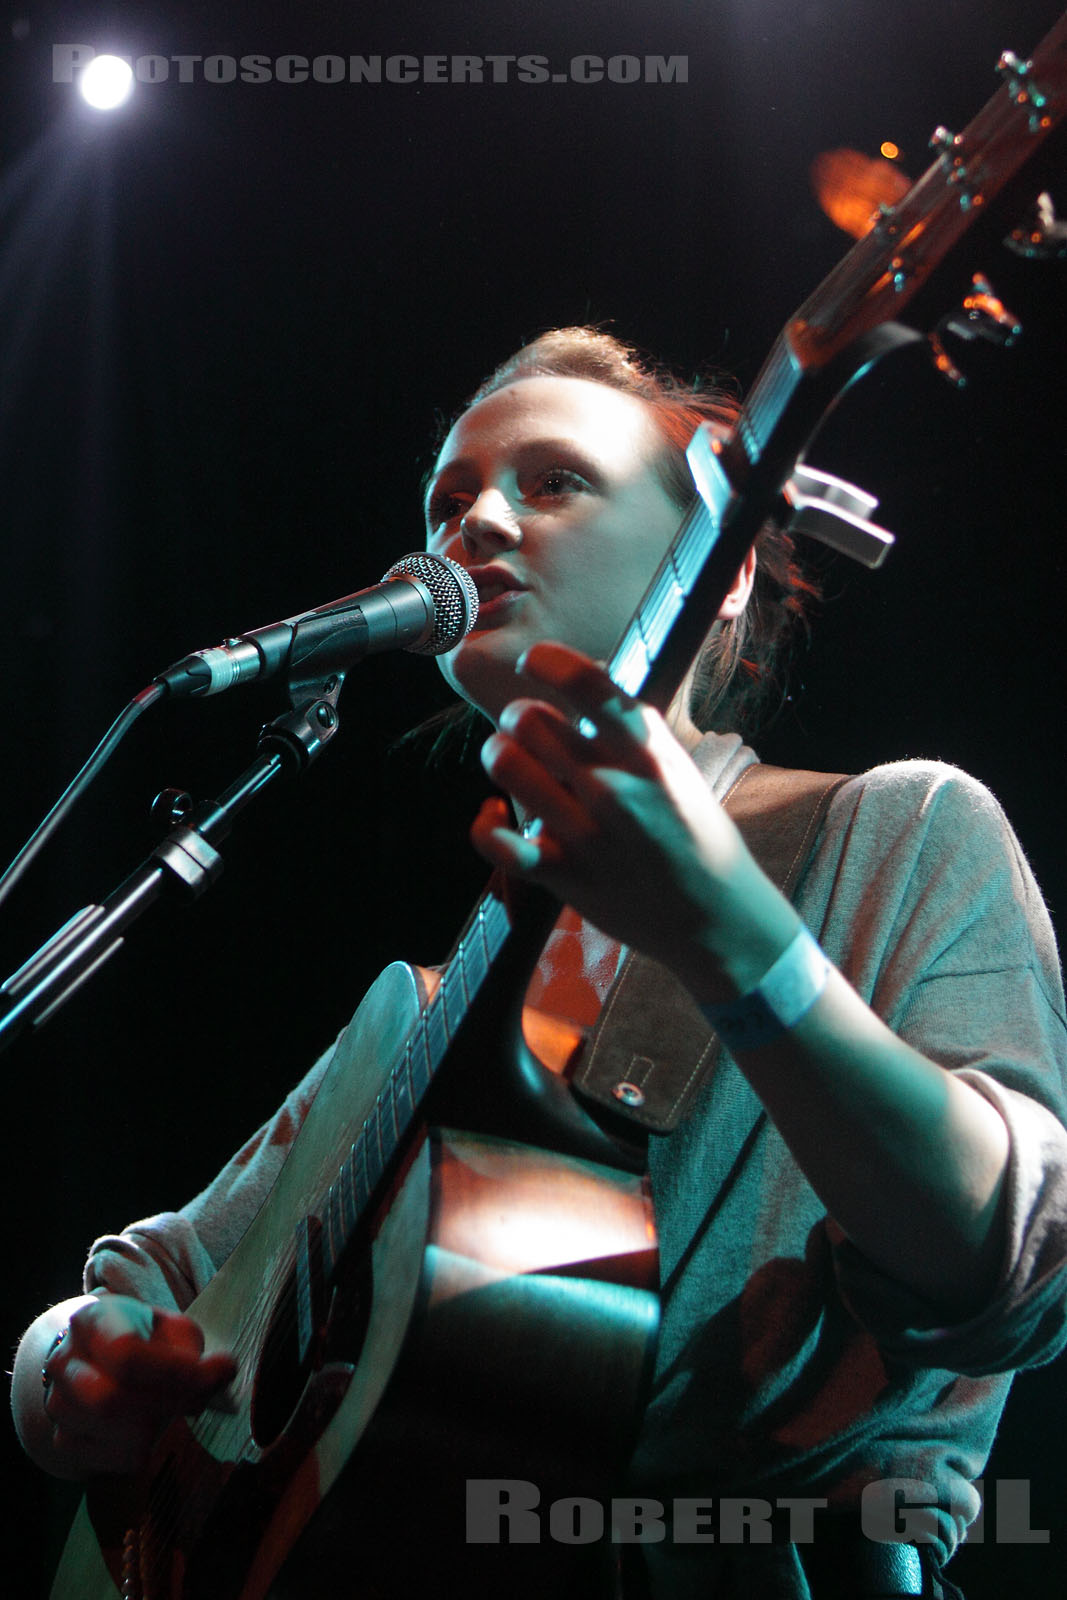 LAURA MARLING - 2010-04-07 - PARIS - La Fleche d'Or